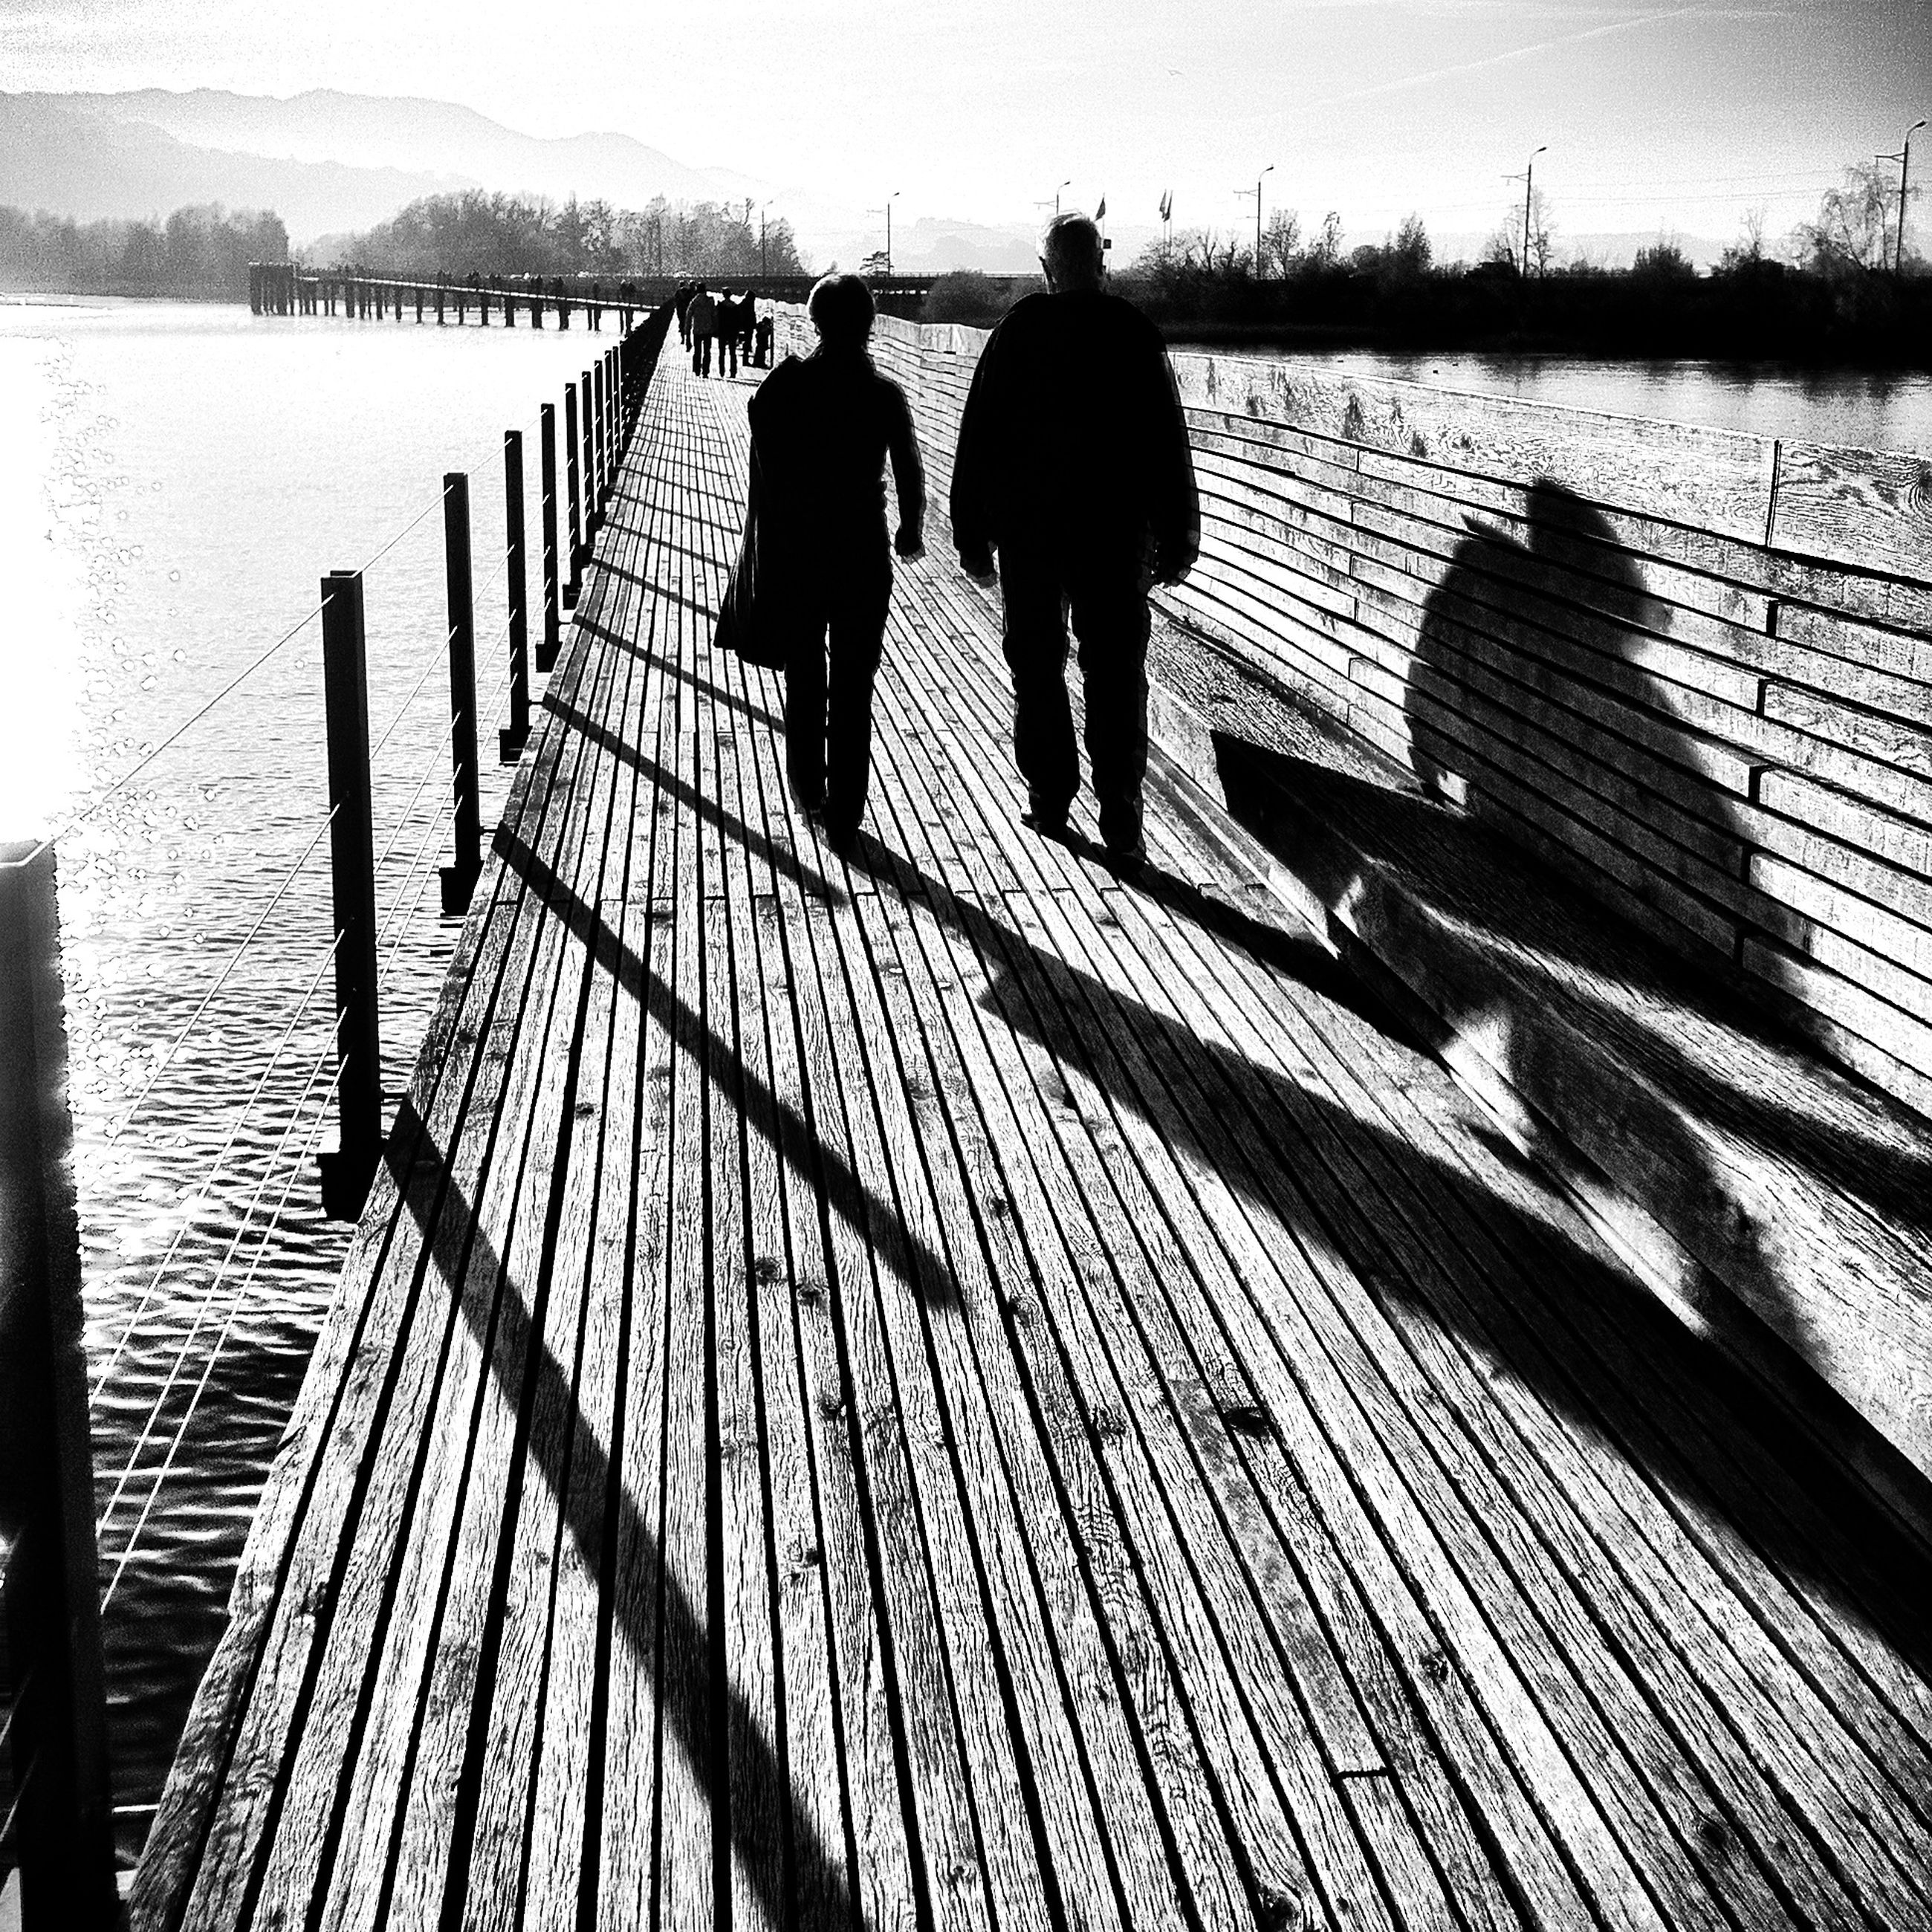 water, men, walking, railing, lifestyles, silhouette, leisure activity, full length, shadow, togetherness, rear view, sea, standing, person, reflection, pier, sunlight